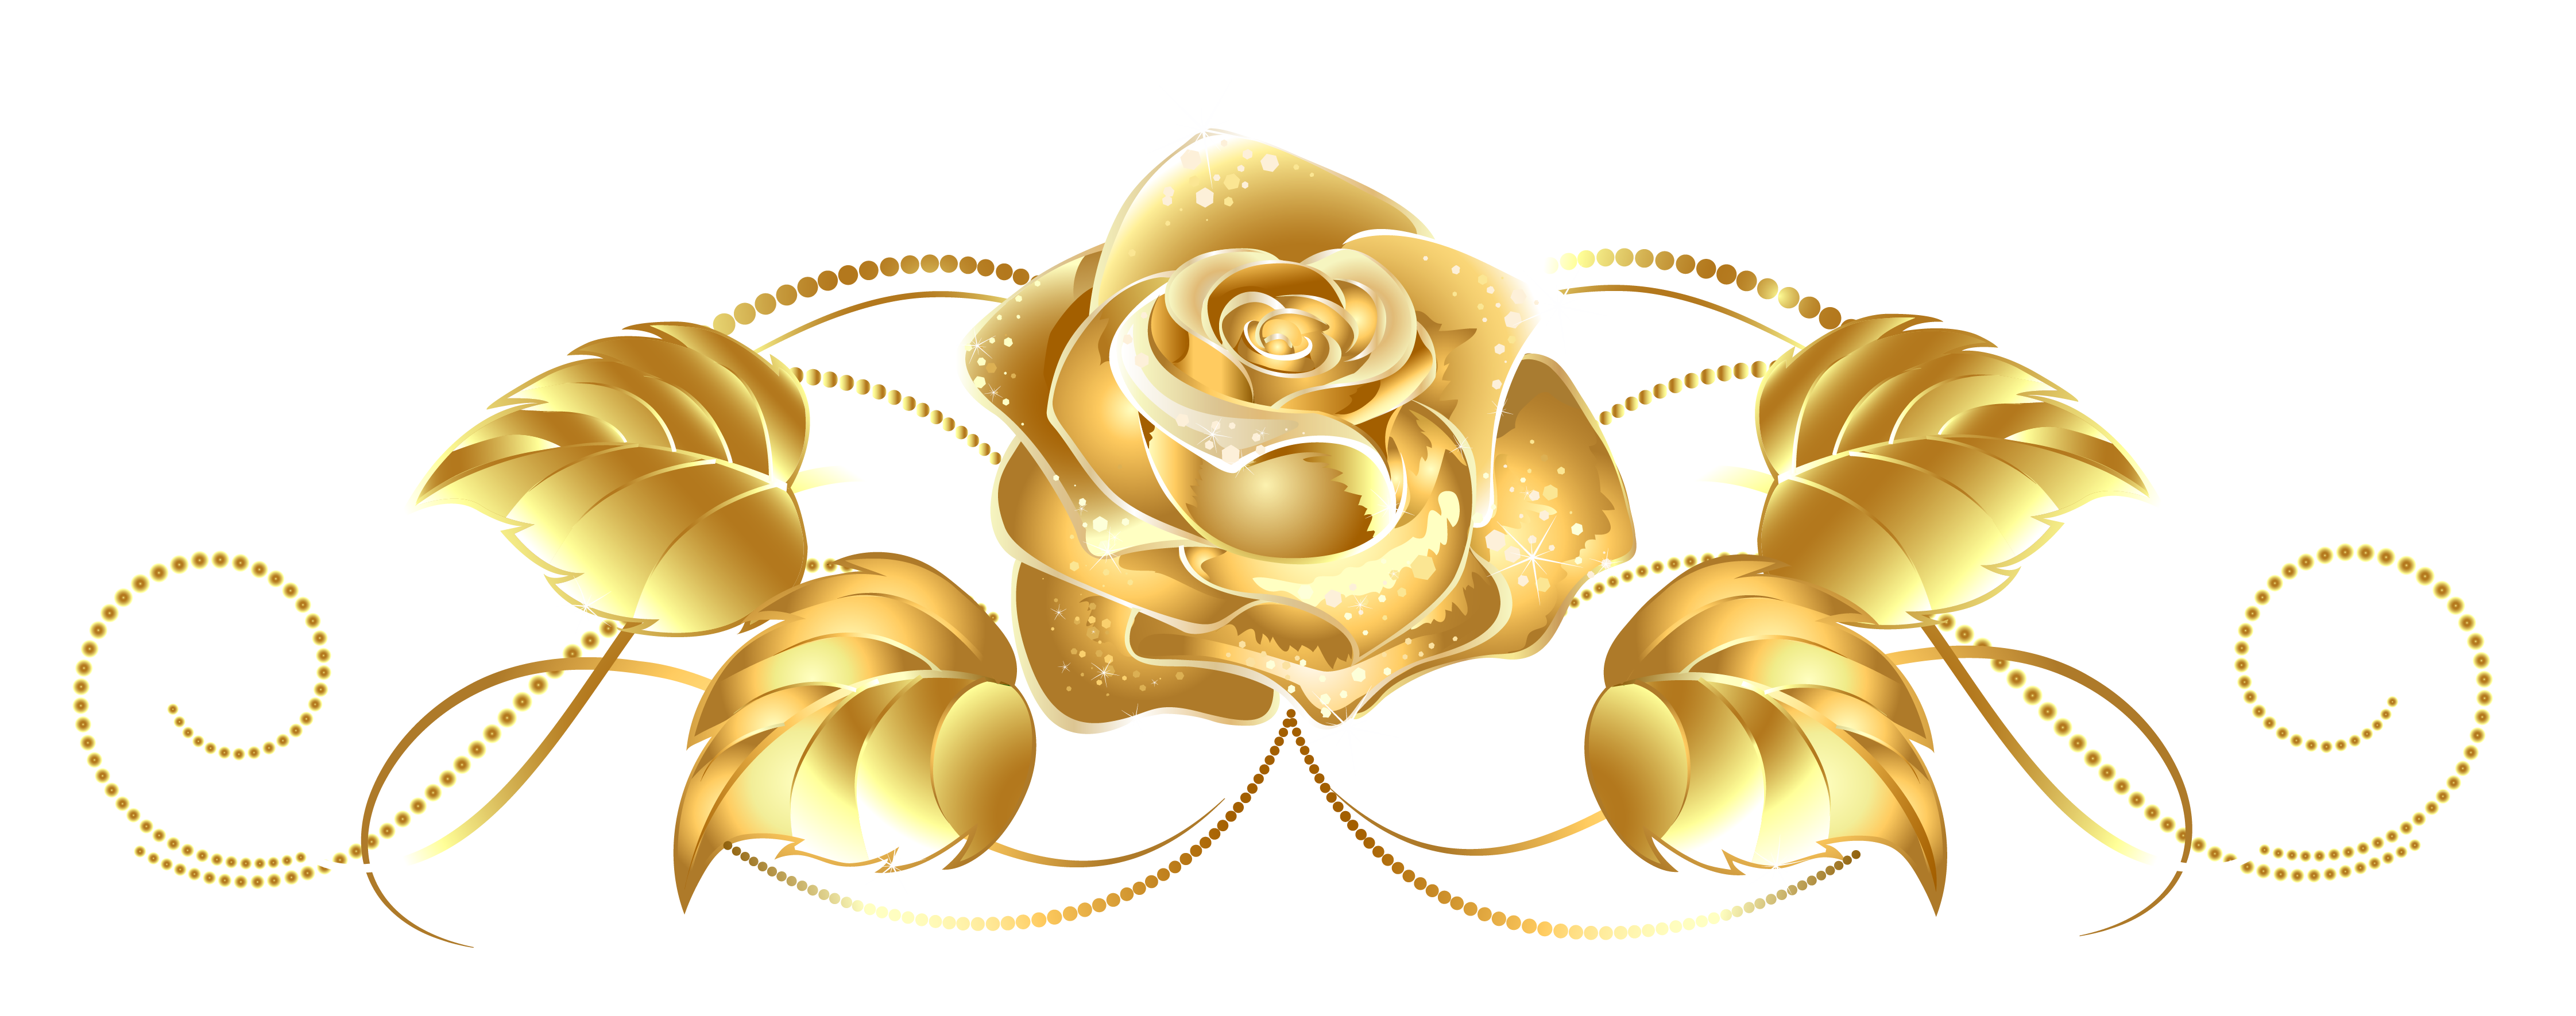 Gold Png Image PNG Image - Gold PNG